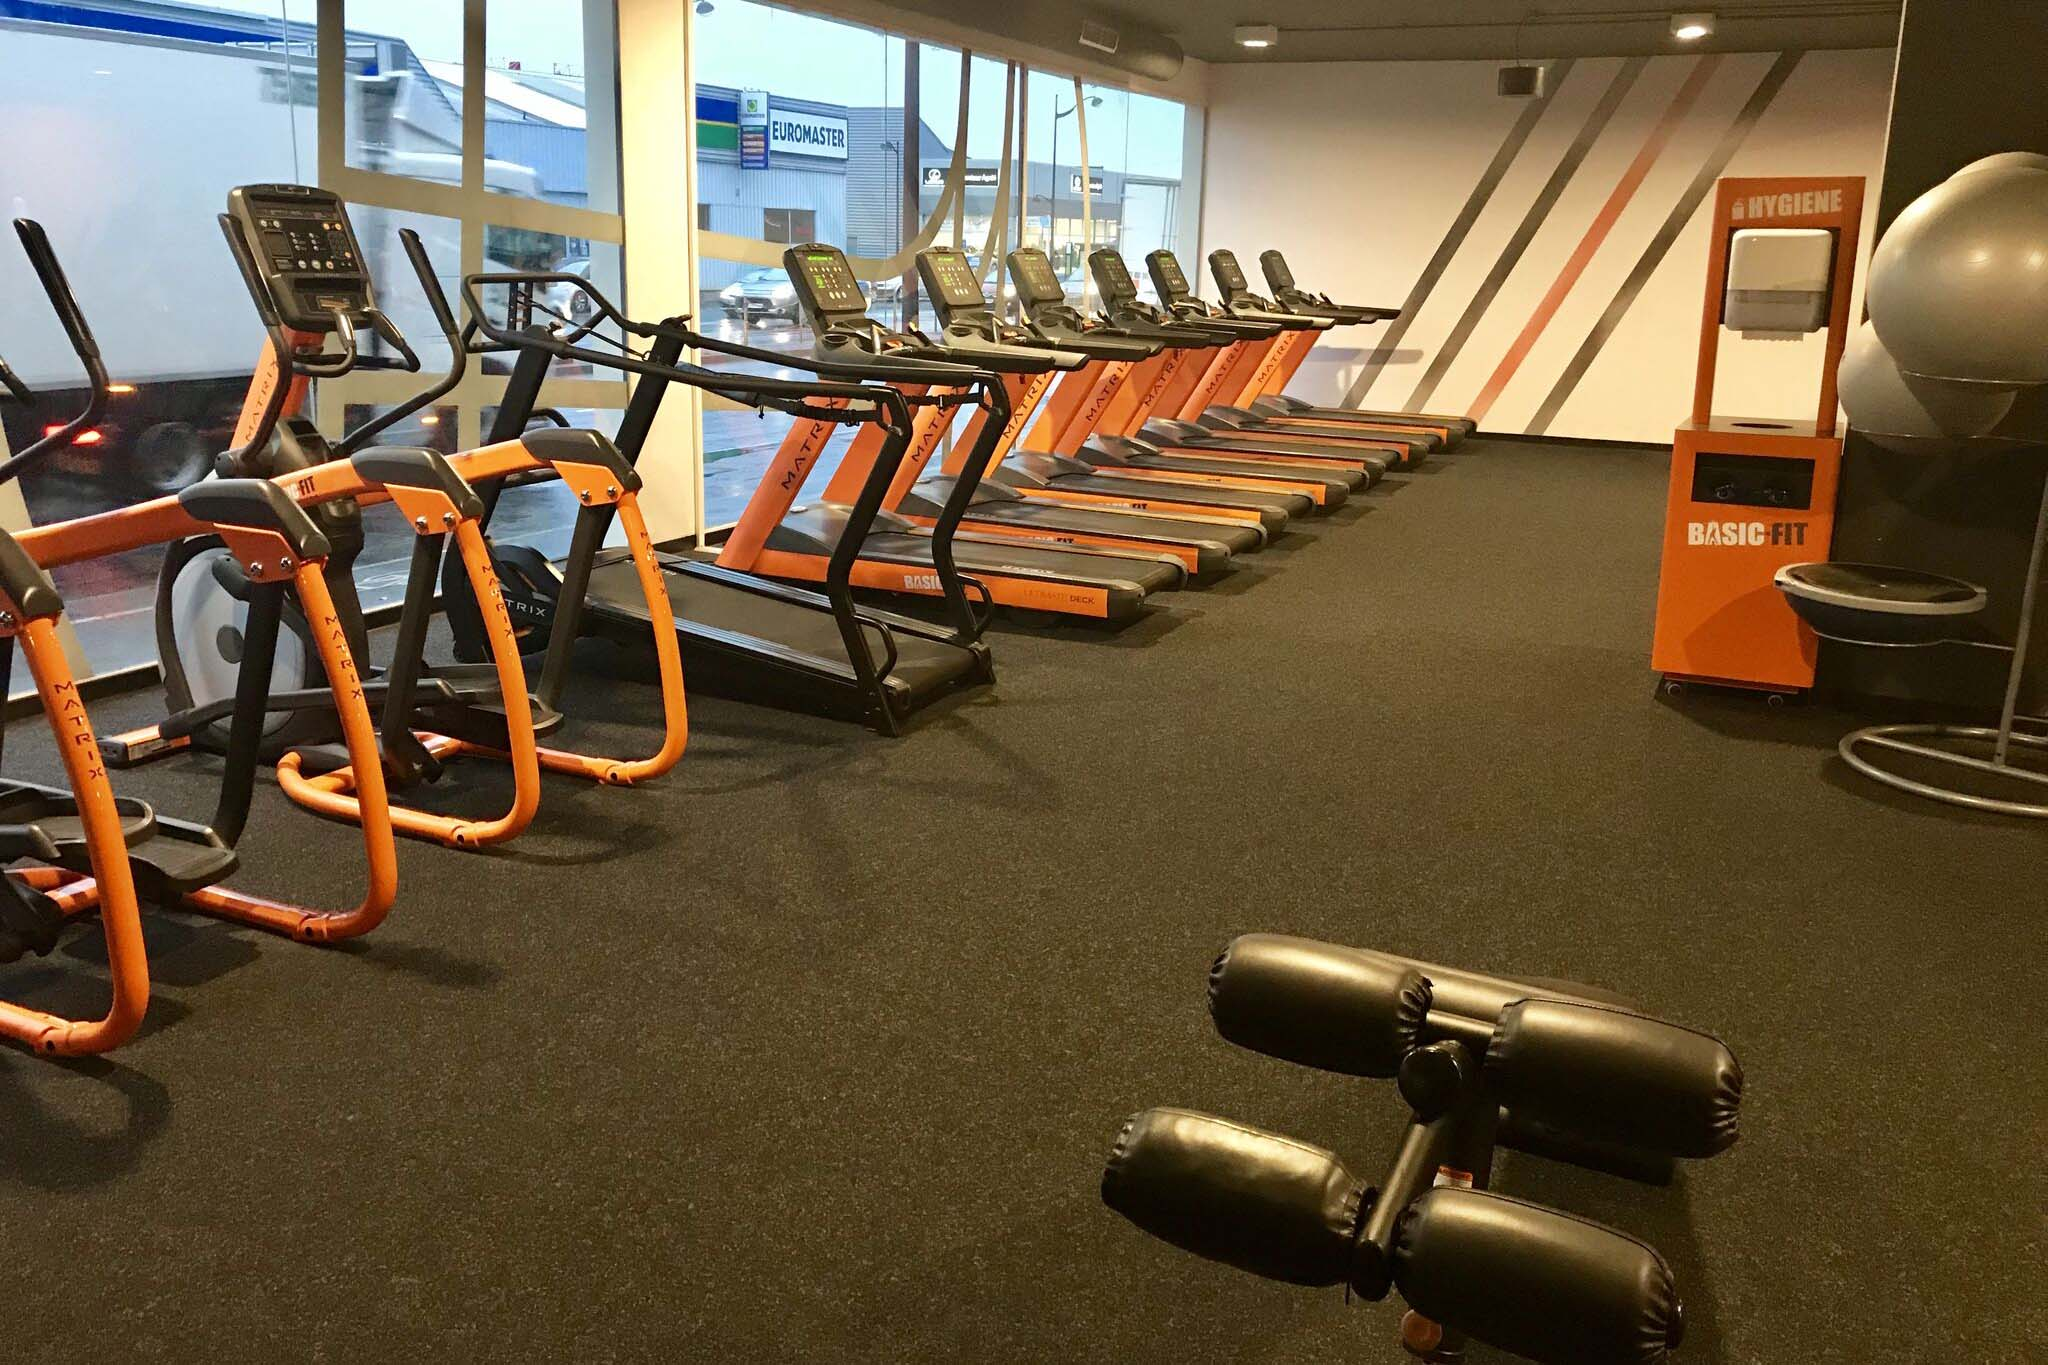 Salle De Sport Basic Fit Viry Chatillon Avenue Du General De Gaulle